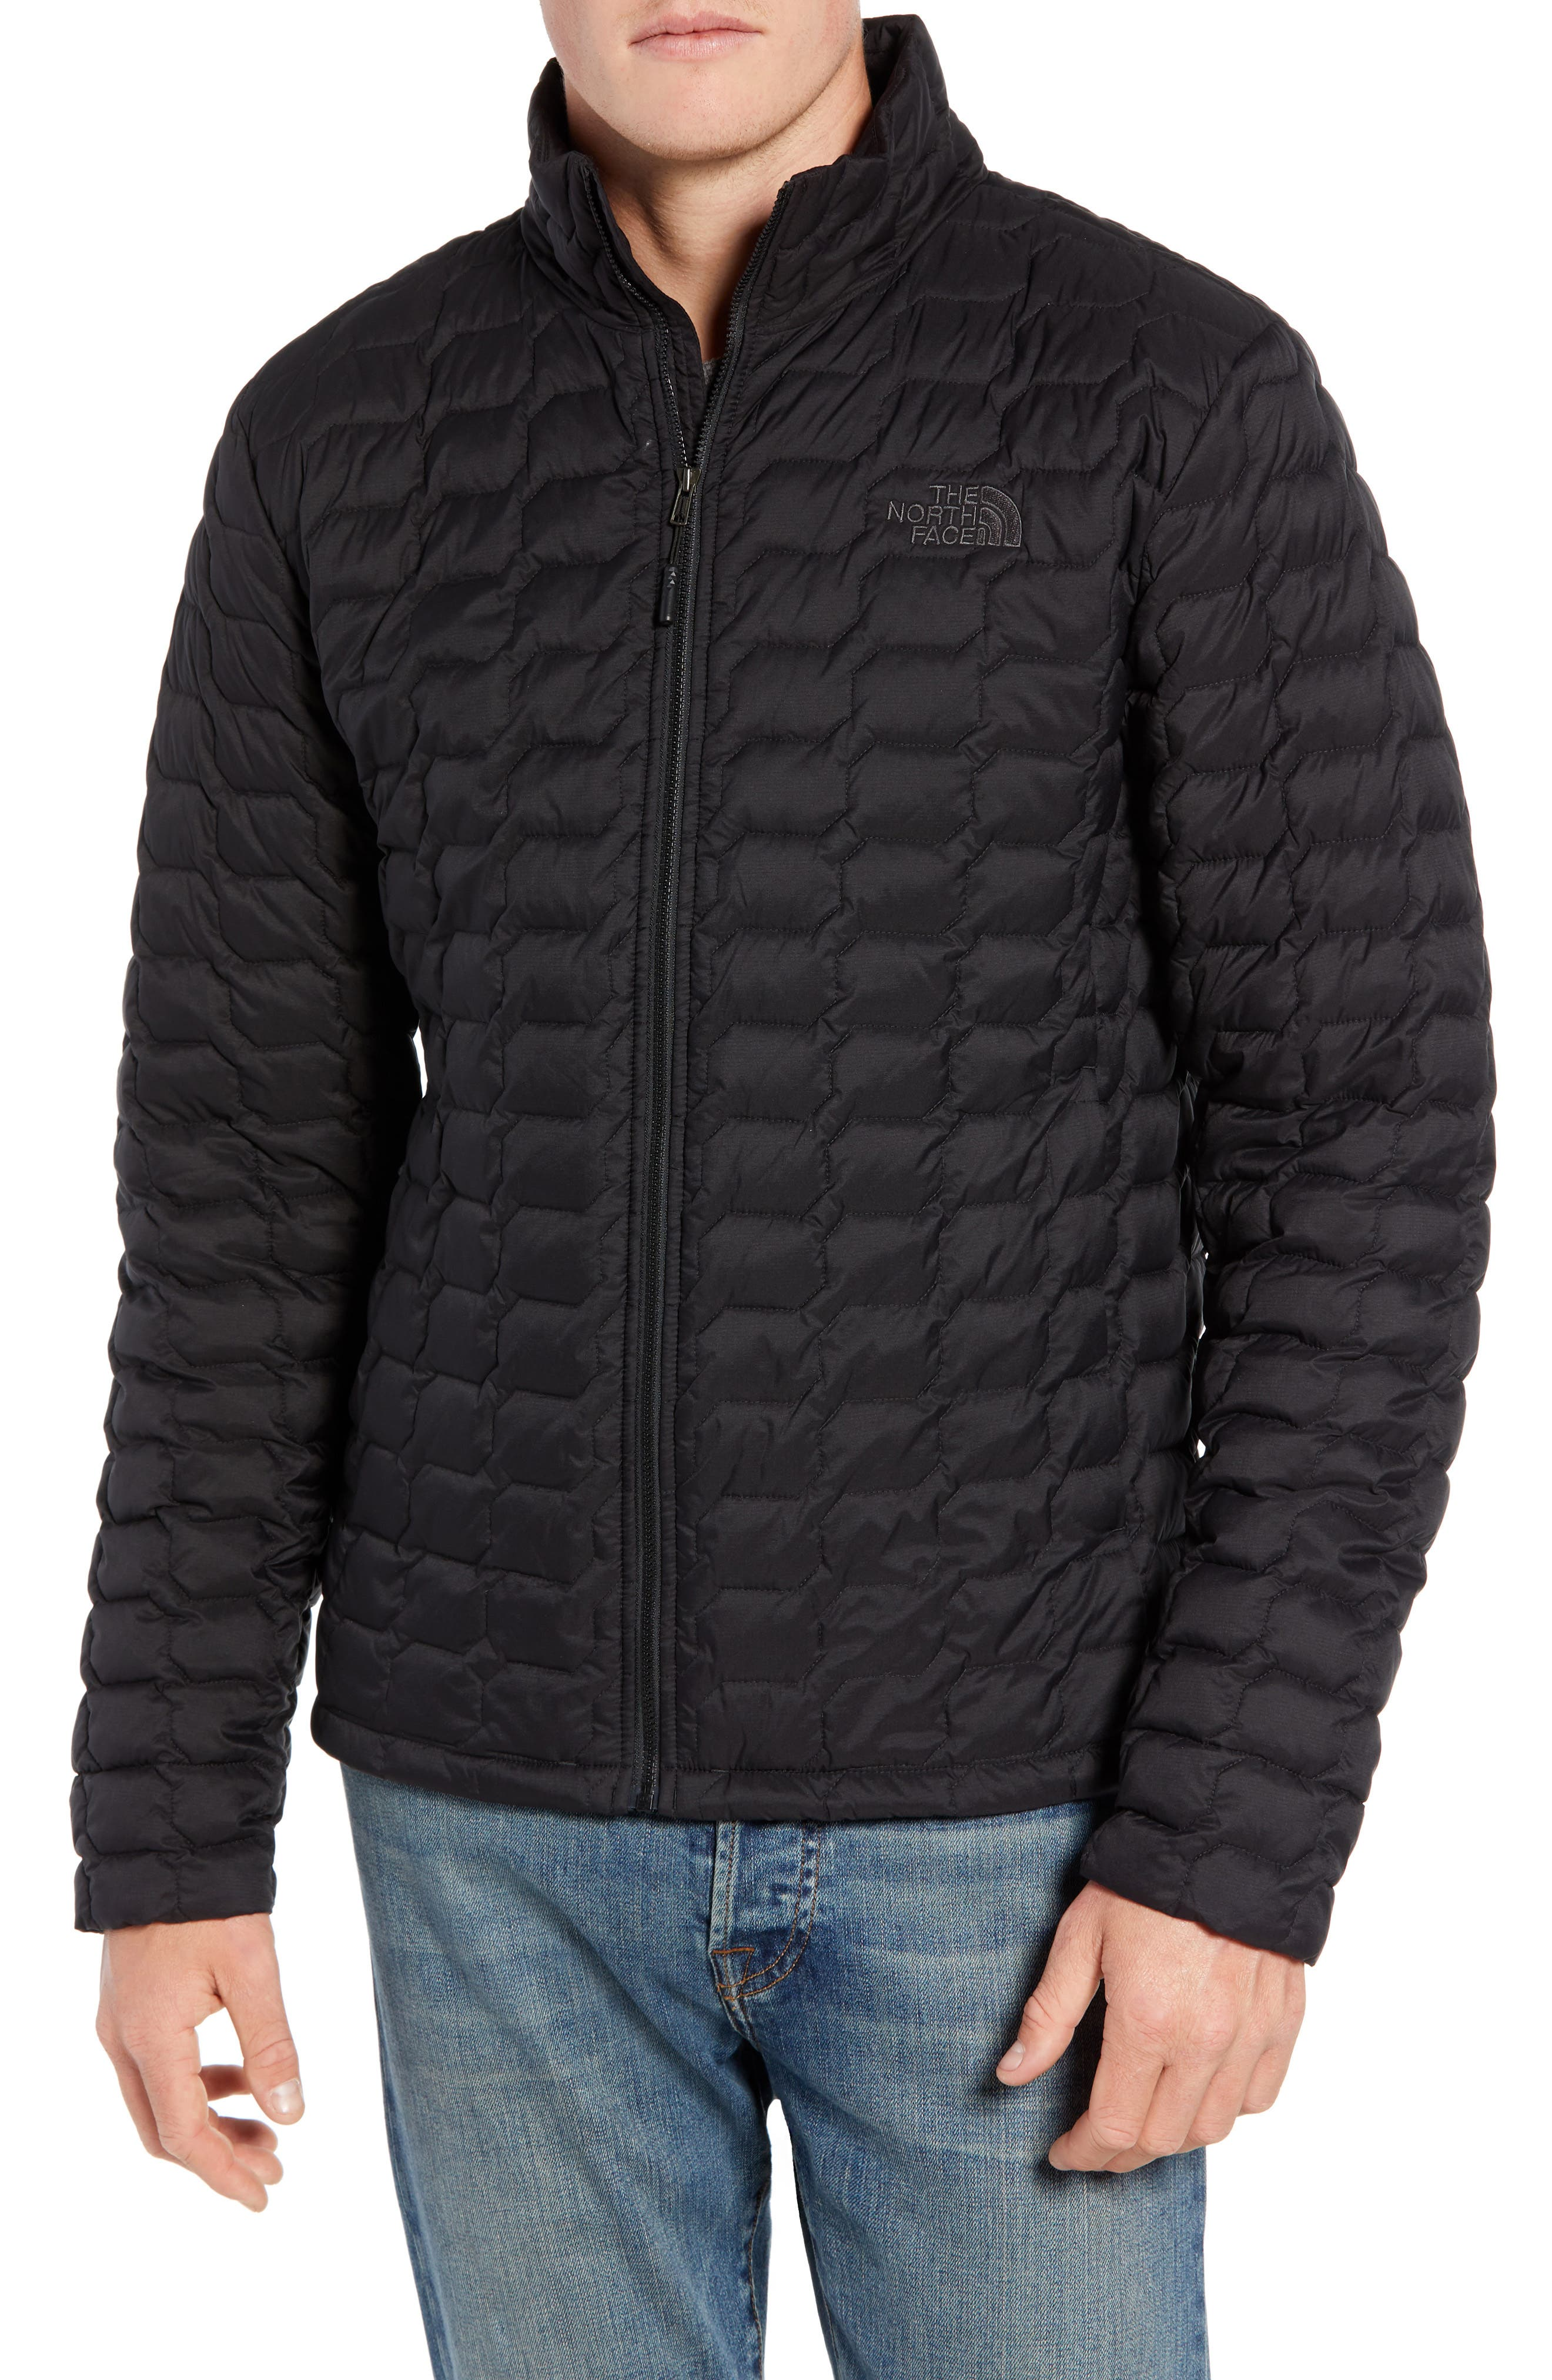 THE NORTH FACE, ThermoBall<sup>™</sup> Jacket, Main thumbnail 1, color, 001